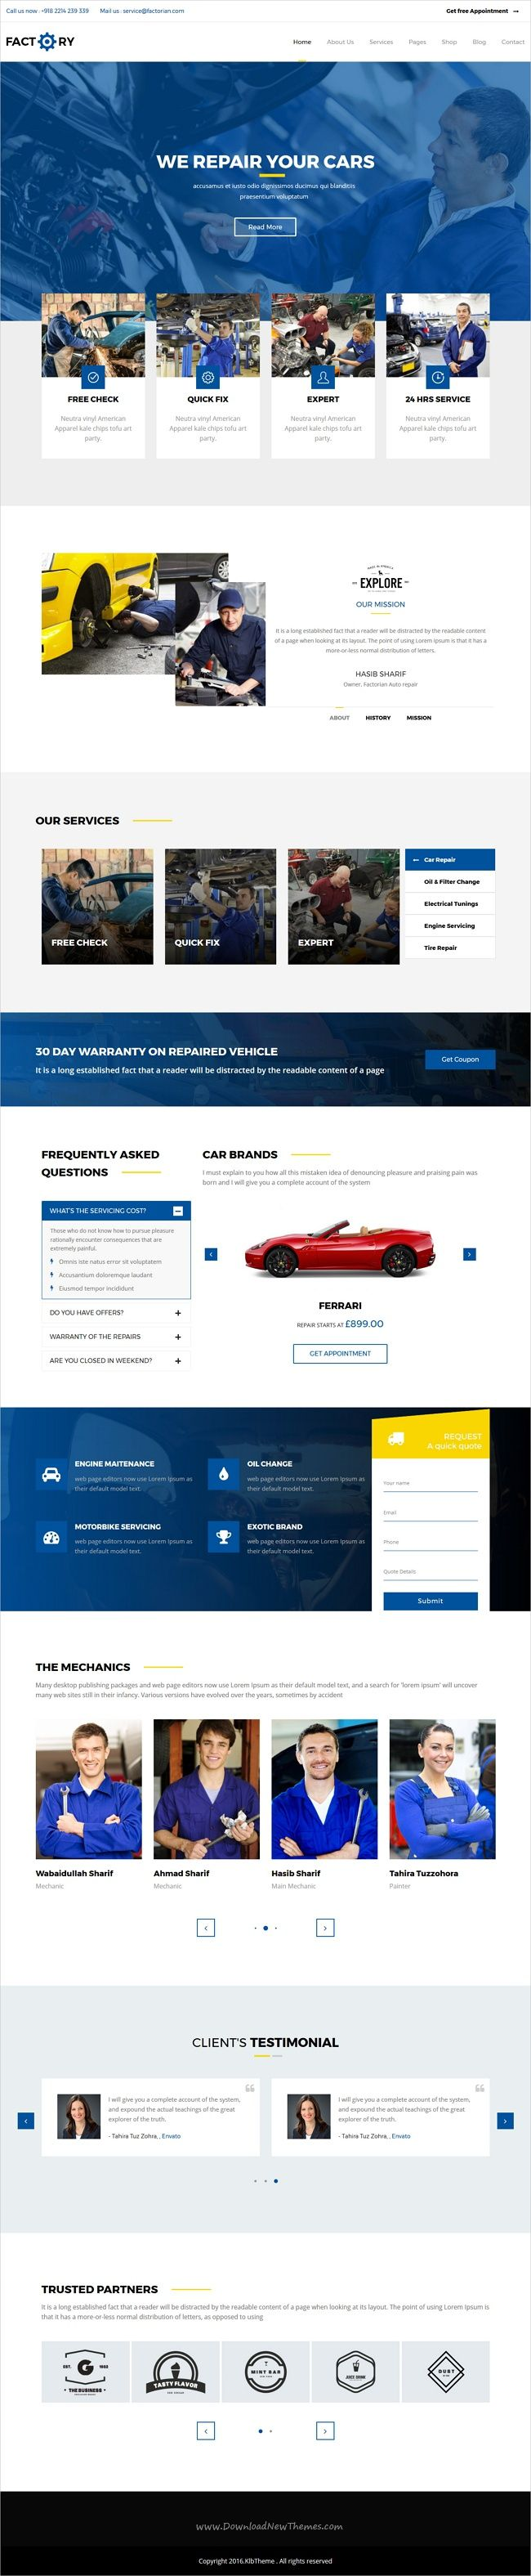 Factorian is a wonderful 5in1 responsive #WordPress theme for #auto #workshop #repair service websites download now➩ https://themeforest.net/item/factorian-responsive-multipurpose-business-wordpress-theme/18968629?ref=Datasata